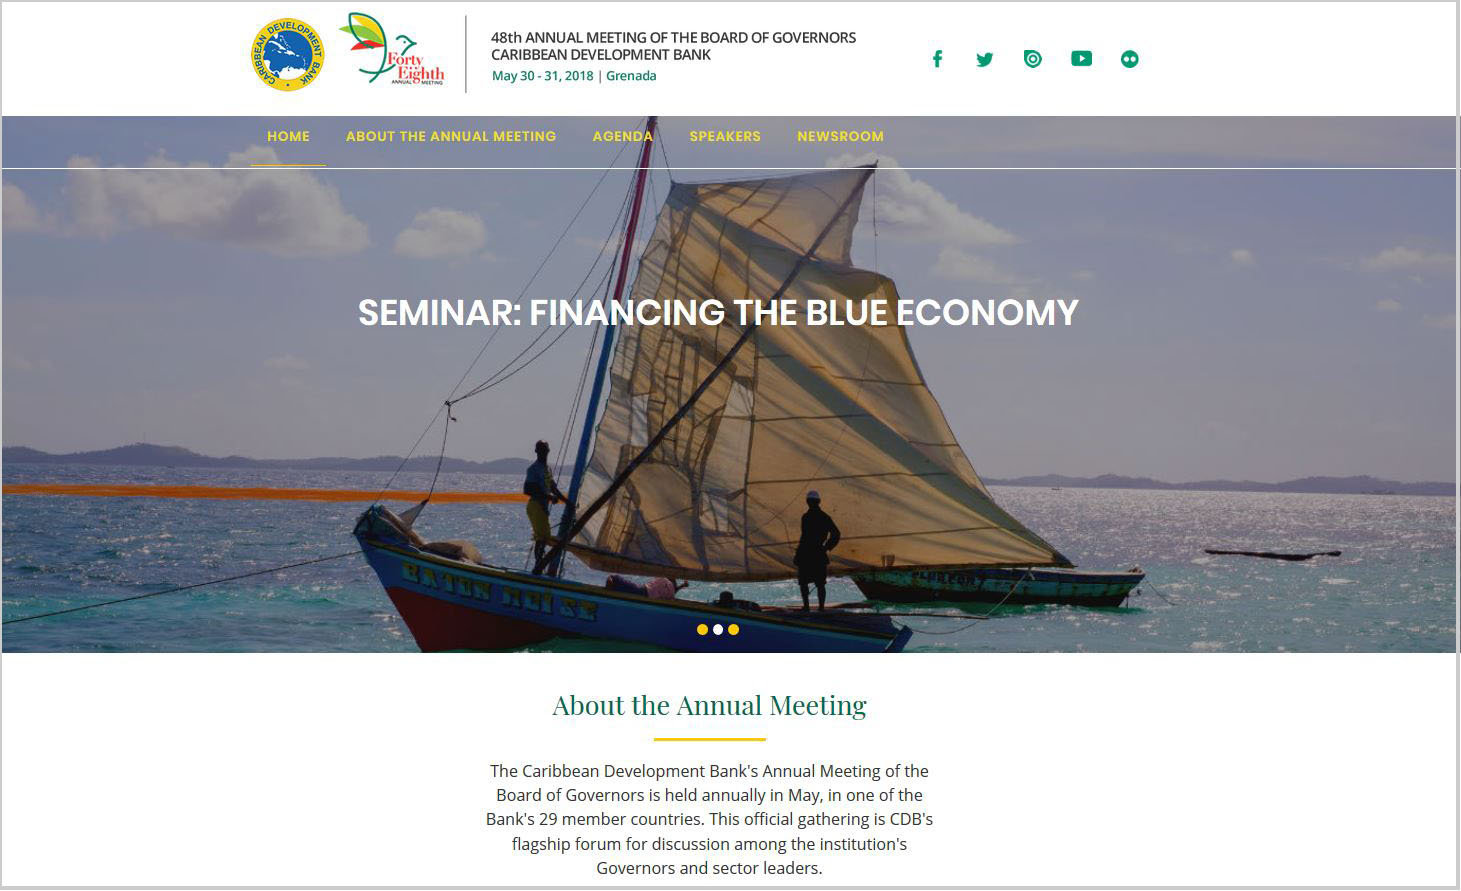 The dedicated Annual Meeting website, bog.caribank.org, and the complementing mobile app have been launched.